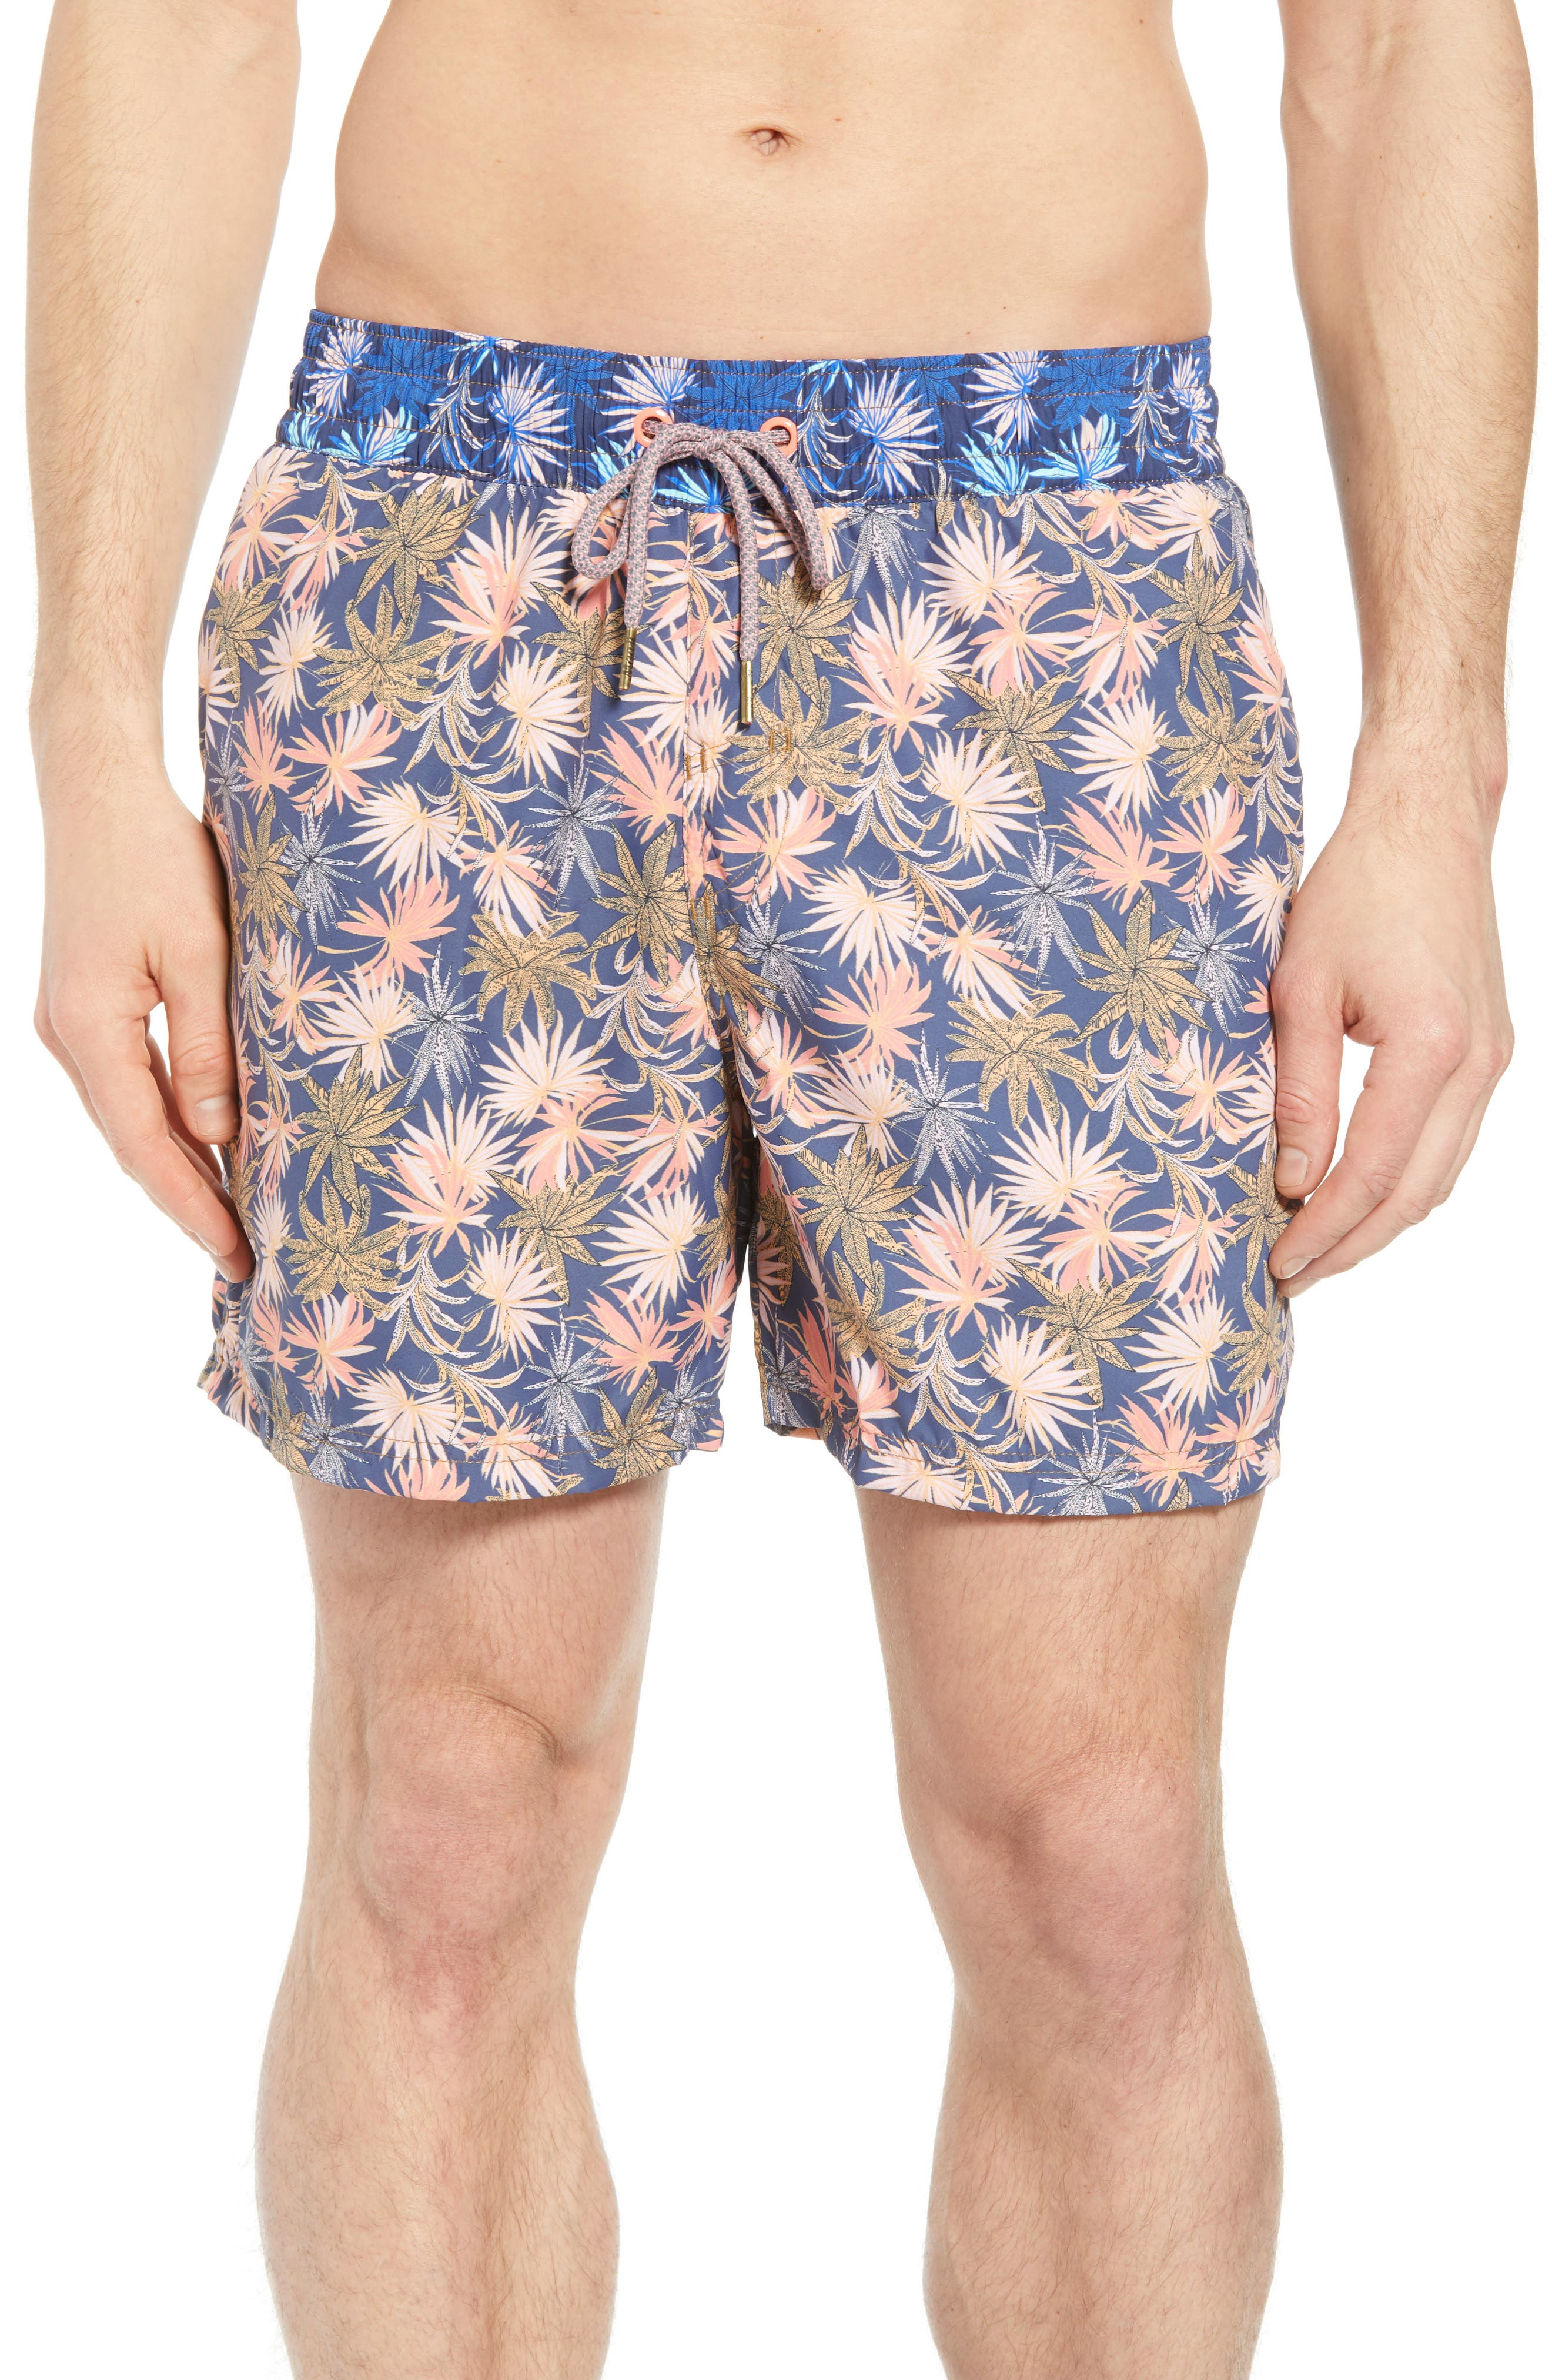 Kickflip Sport Fit Swim Trunks,                         Main,                         color, 400